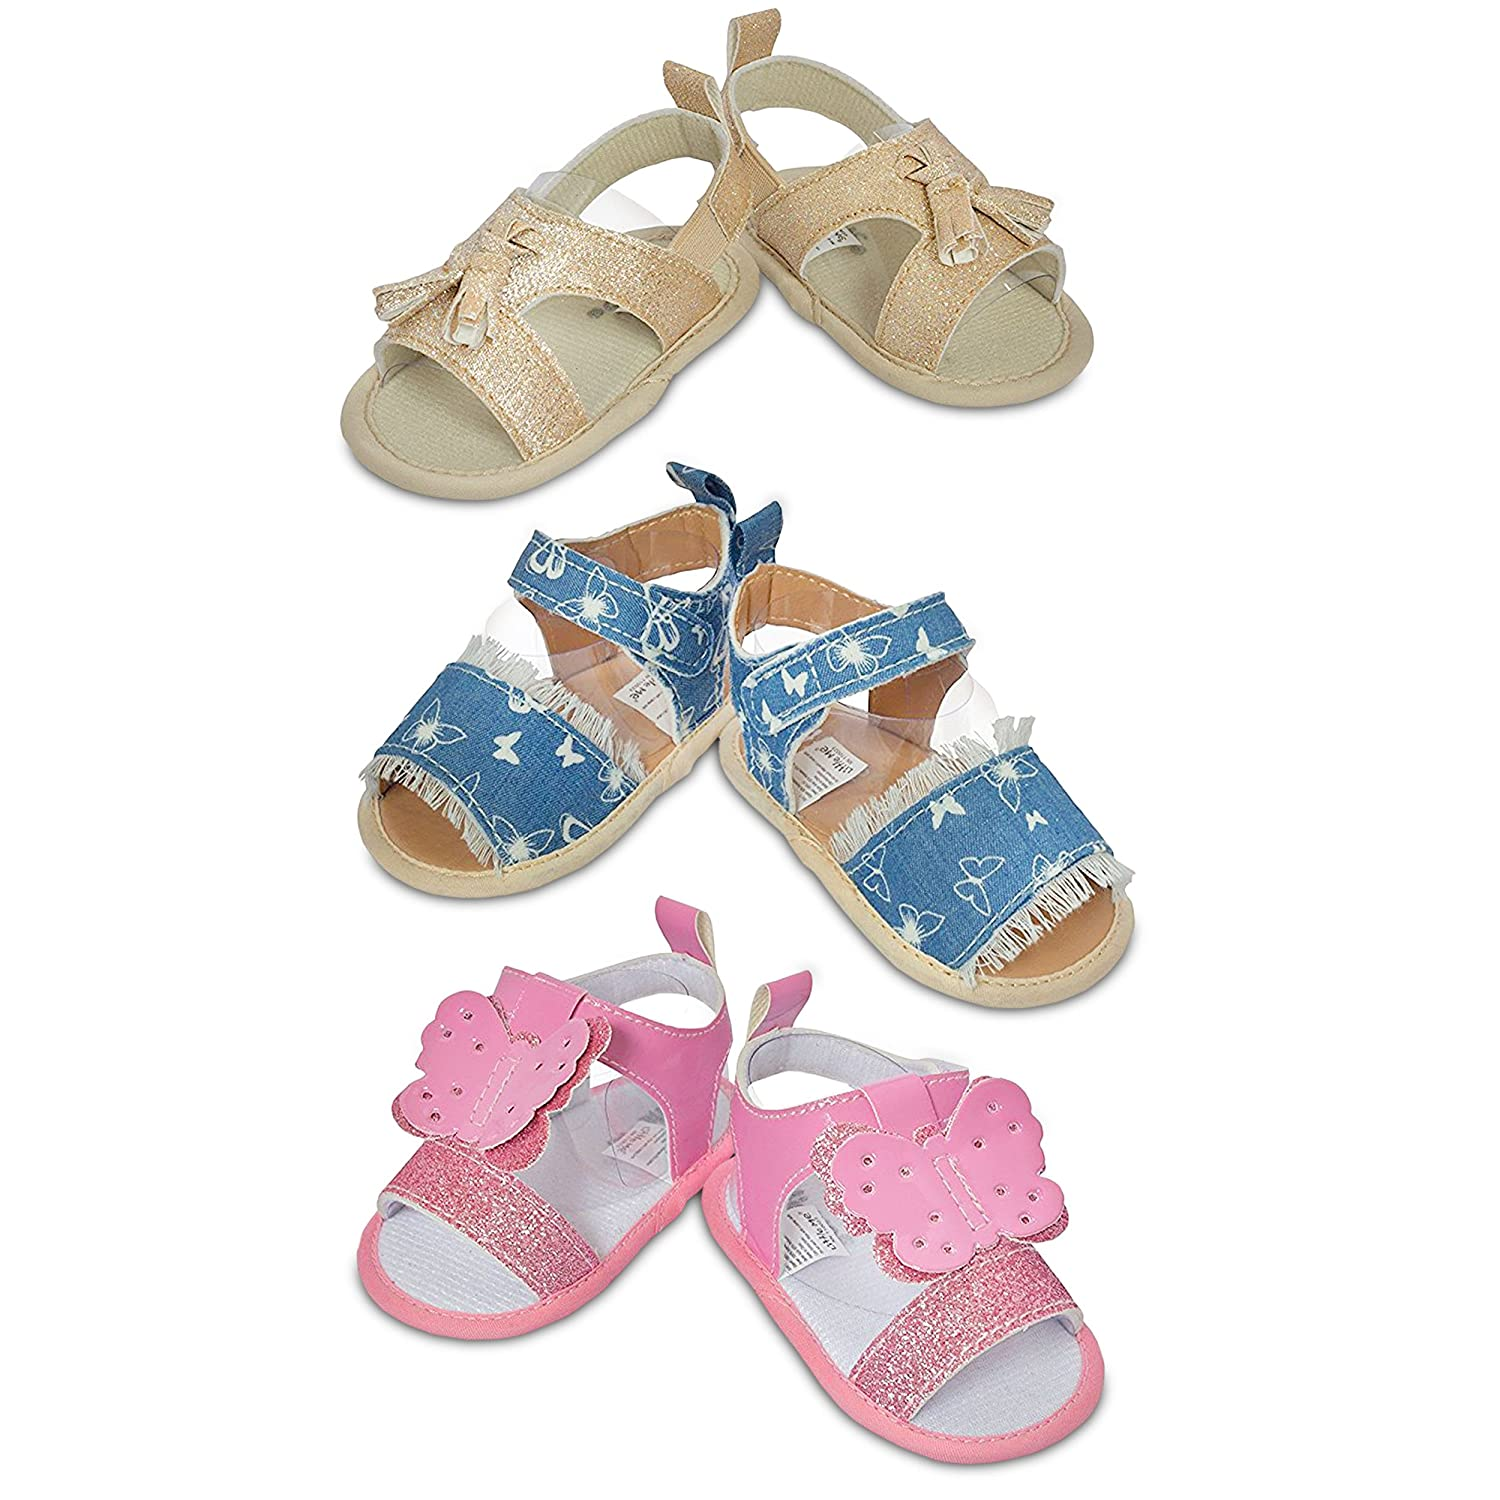 94112fdefed0 Amazon.com  3 Pack Infant Girl Shoes- Assorted Baby Girl Sandals- for Summer